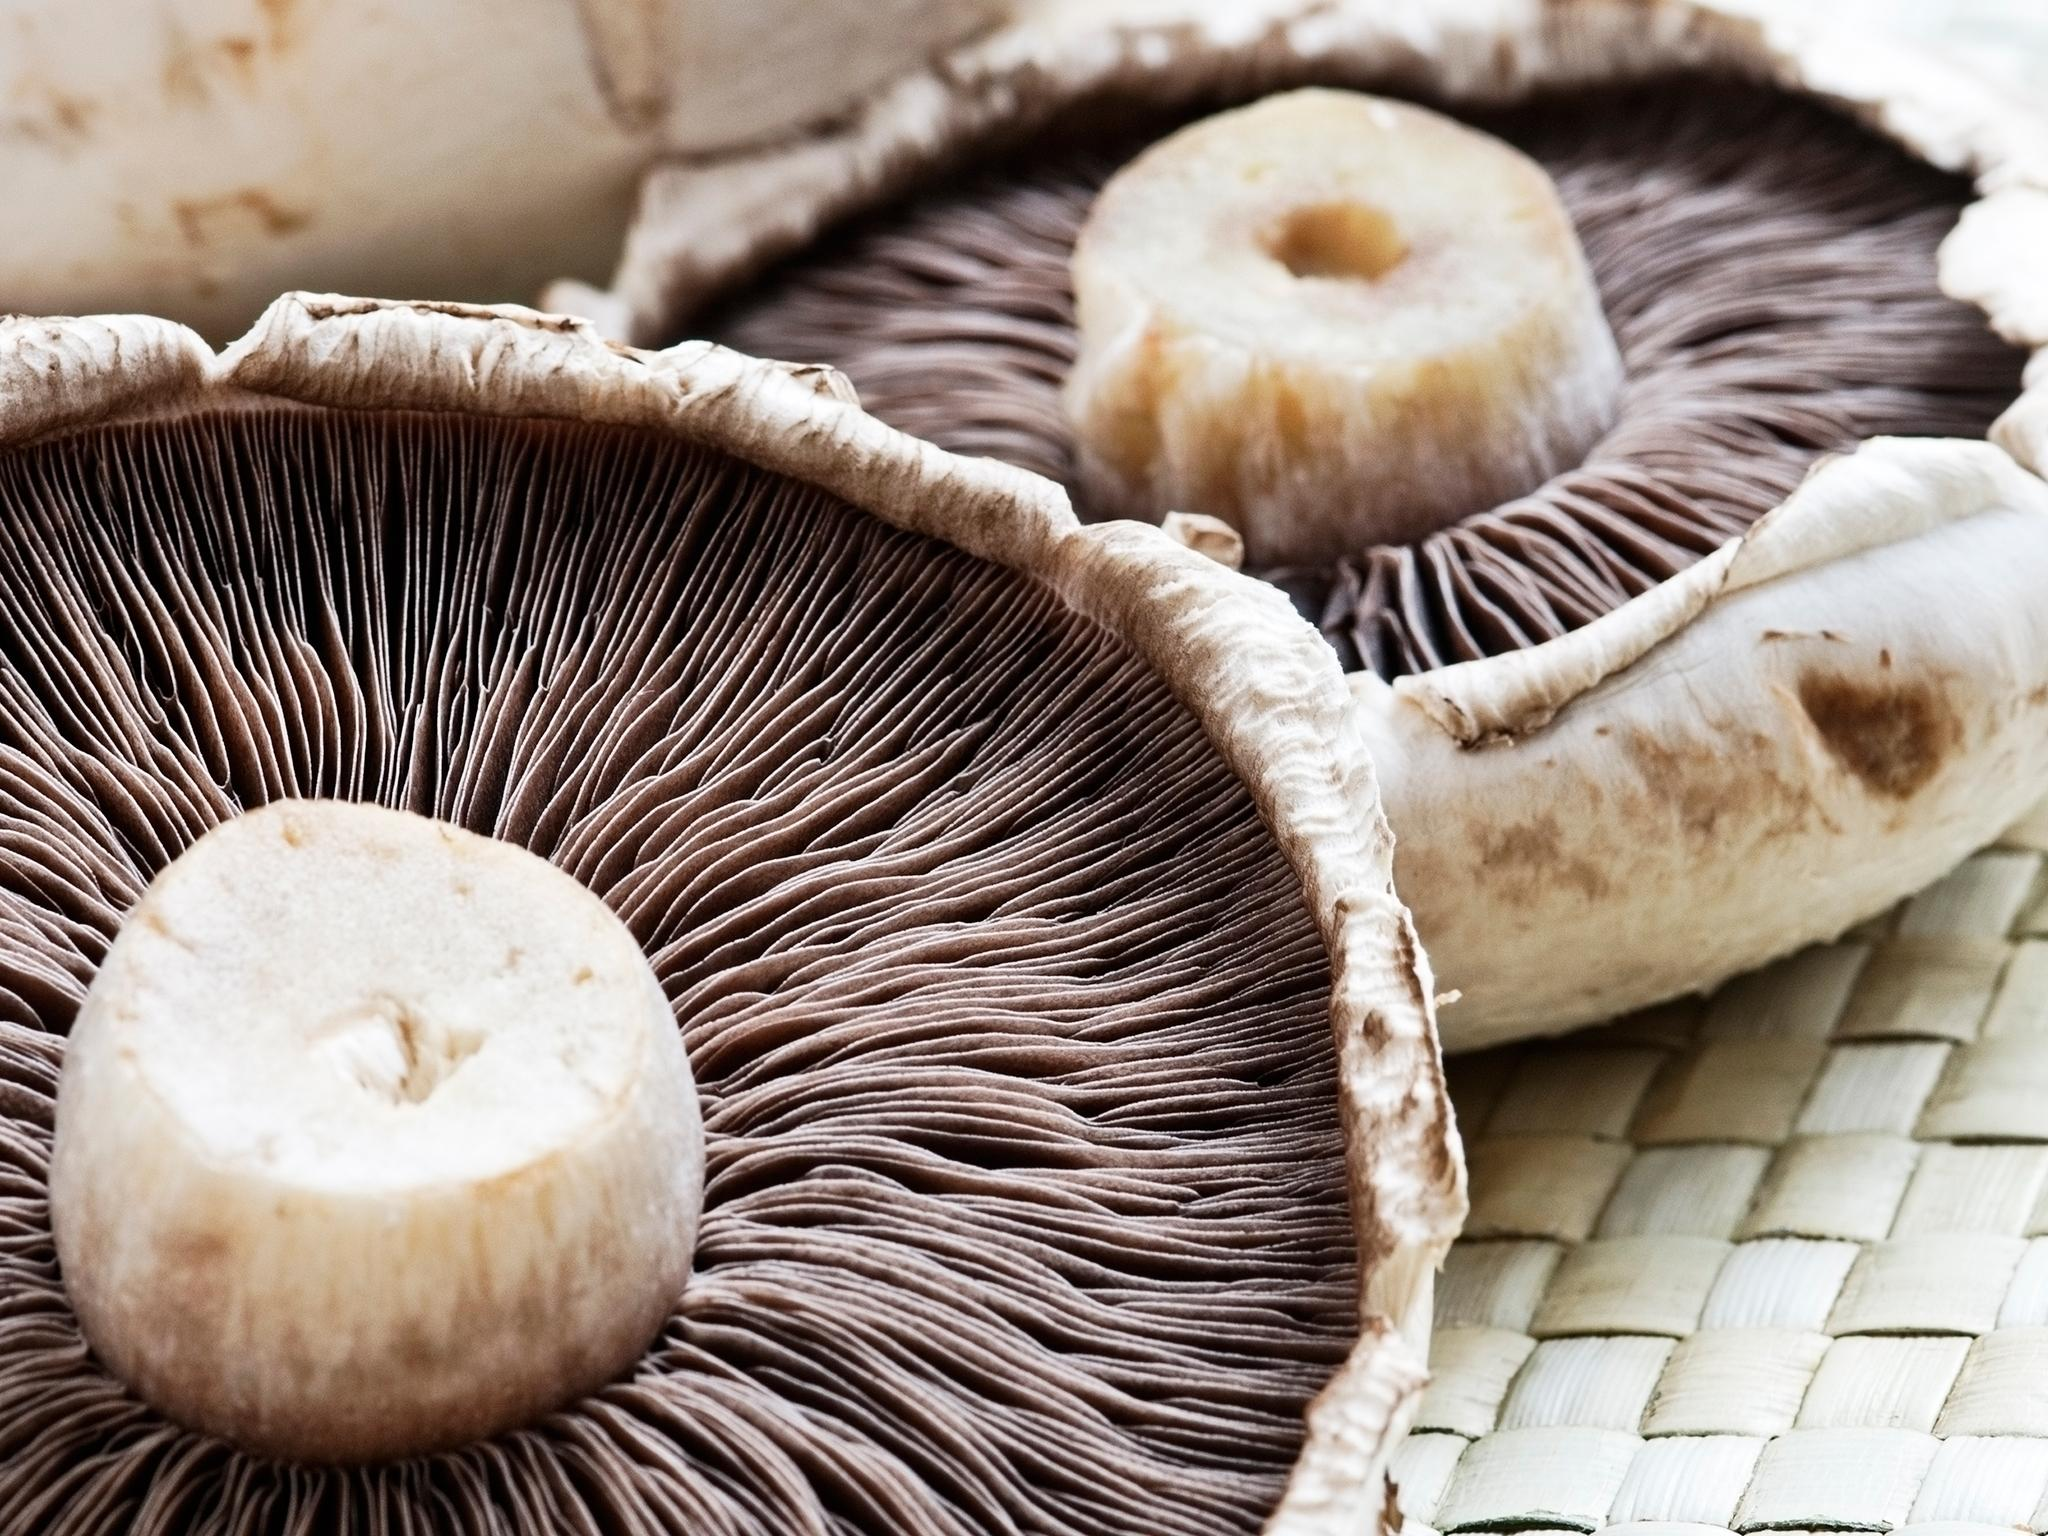 Mushroom coffee: Why people are hailing new fungus drink as next superfood